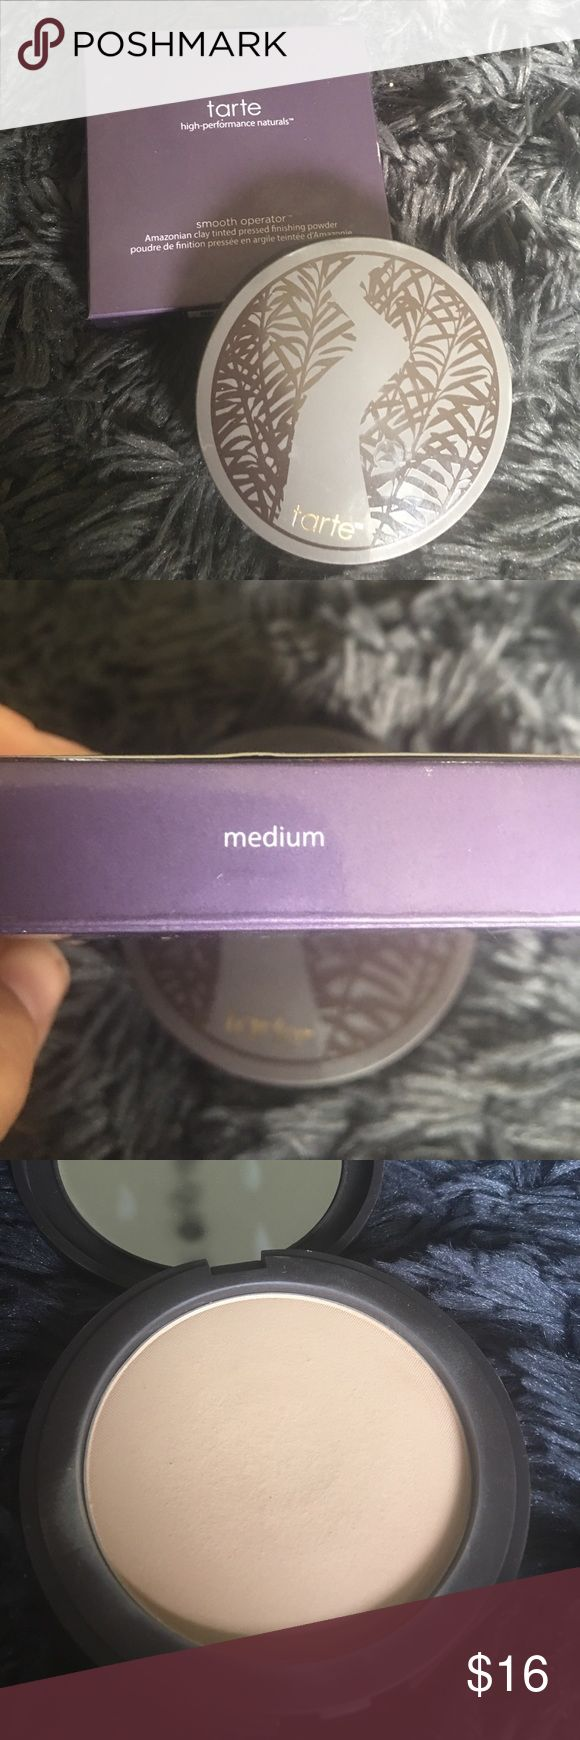 Tarte smooth operator, medium ** please see photos for condition! Some products are brand new but some have minimal professional usage. Price is reflective of usage.** ** ALL my products are authentic!** **any questions please ask before you purchase** ** happy shopping and I hope you enjoy!** Makeup Face Powder